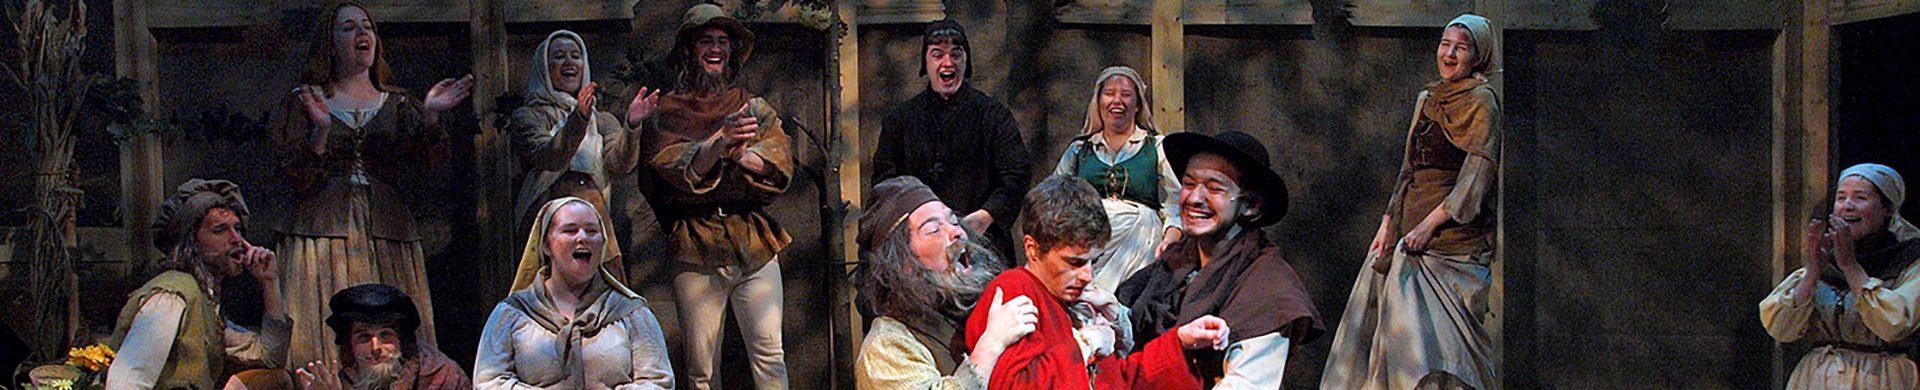 Image of a scene from a play